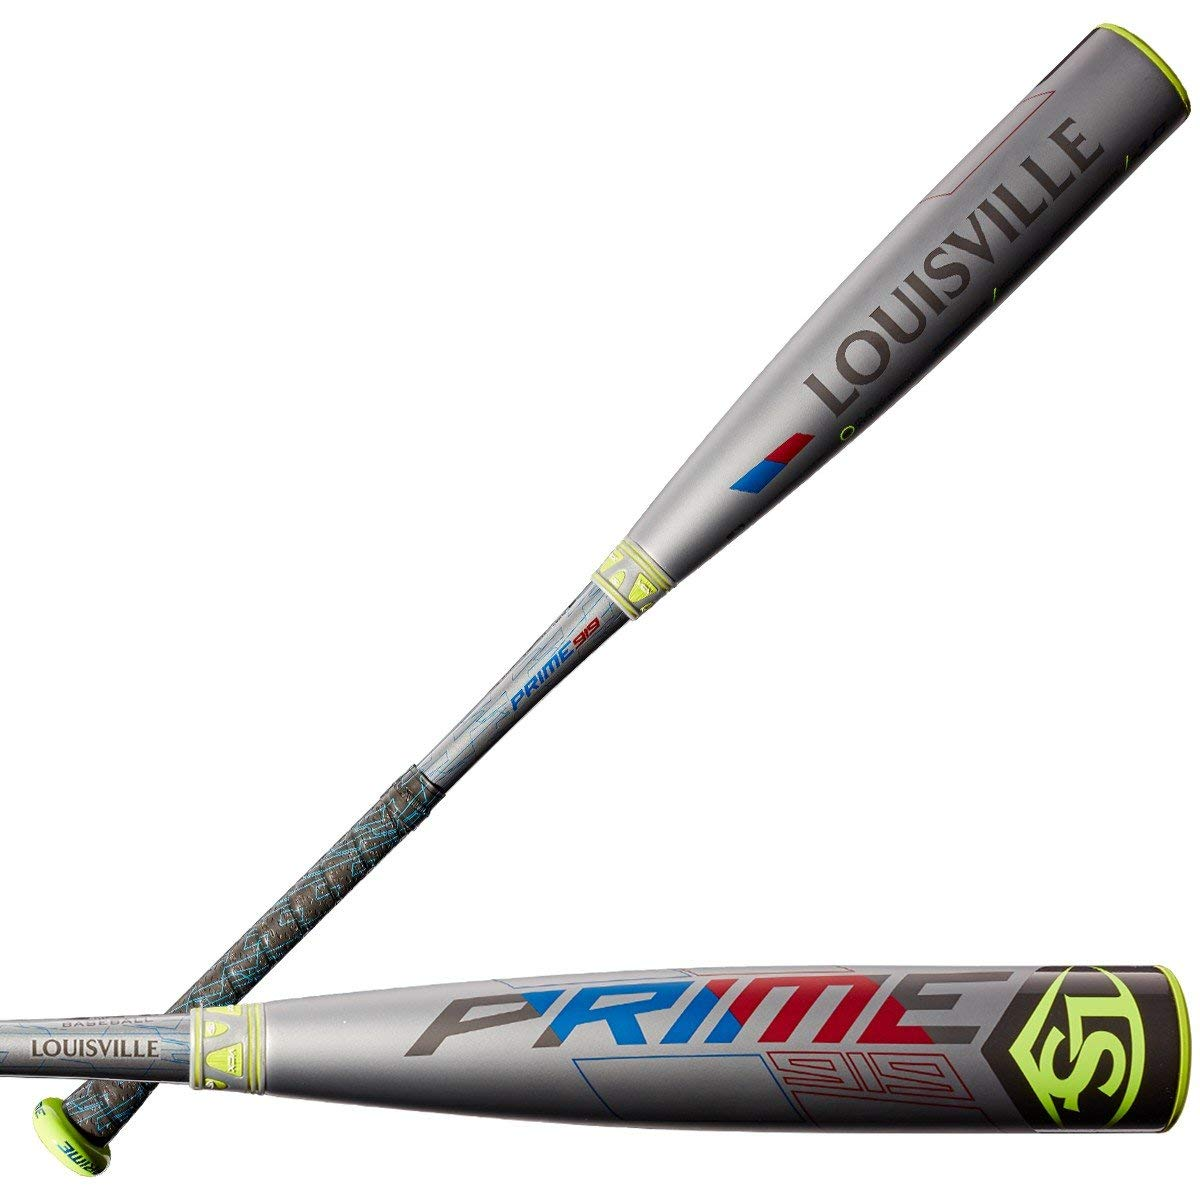 louisville-slugger-2019-prime-919-10-usa-baseball-bat-31-inch-21-oz WTLUBP919B1031  887768730185 <p>-10 length to weight ratio 2 5/8 inch barrel diameter 2-piece